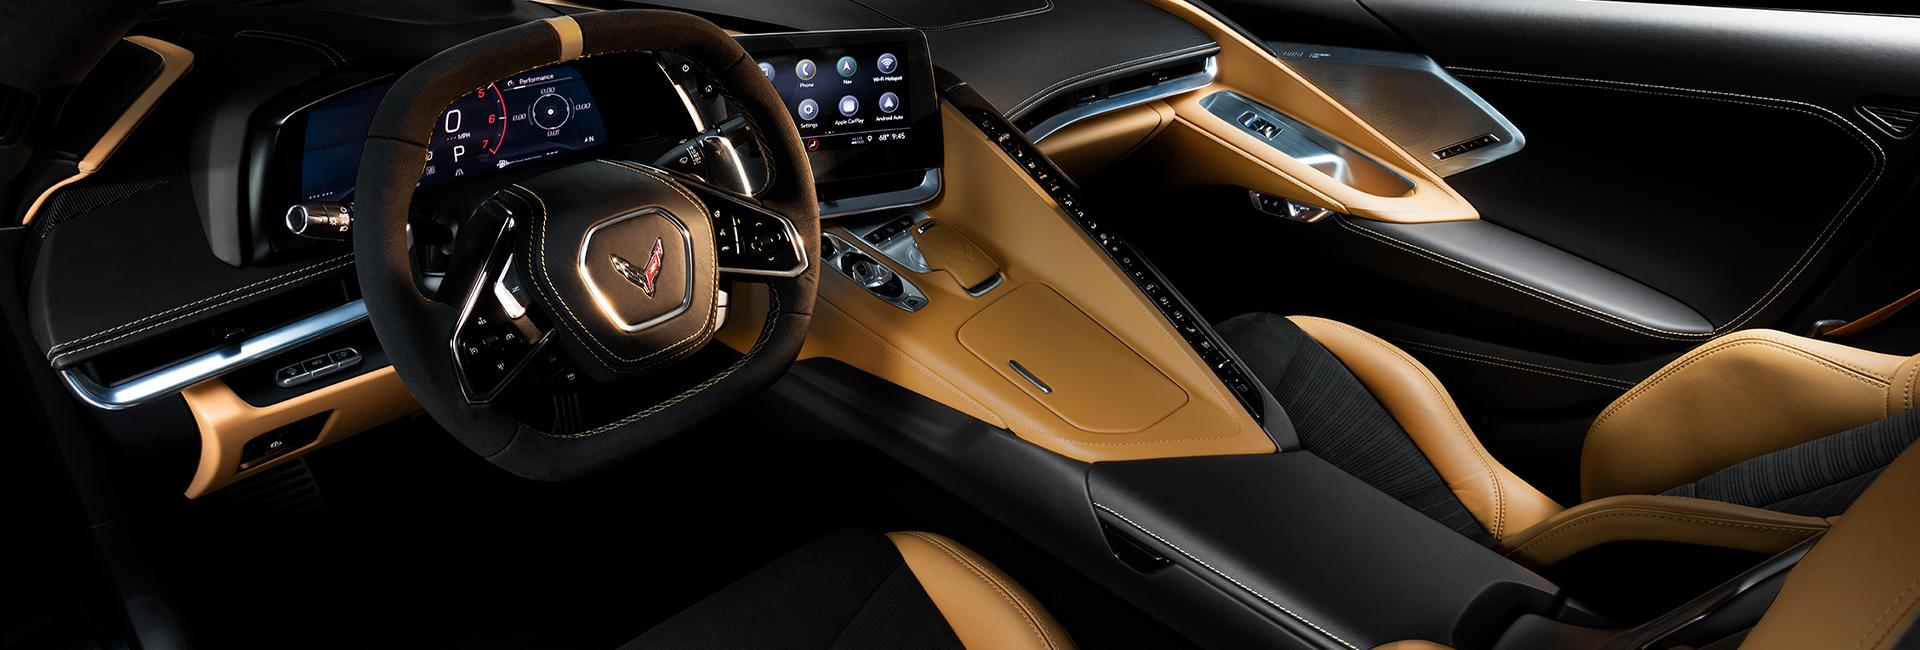 Interior image of the 2020 Chevy Corvette available at Spitzer Chevy Amherst Ohio